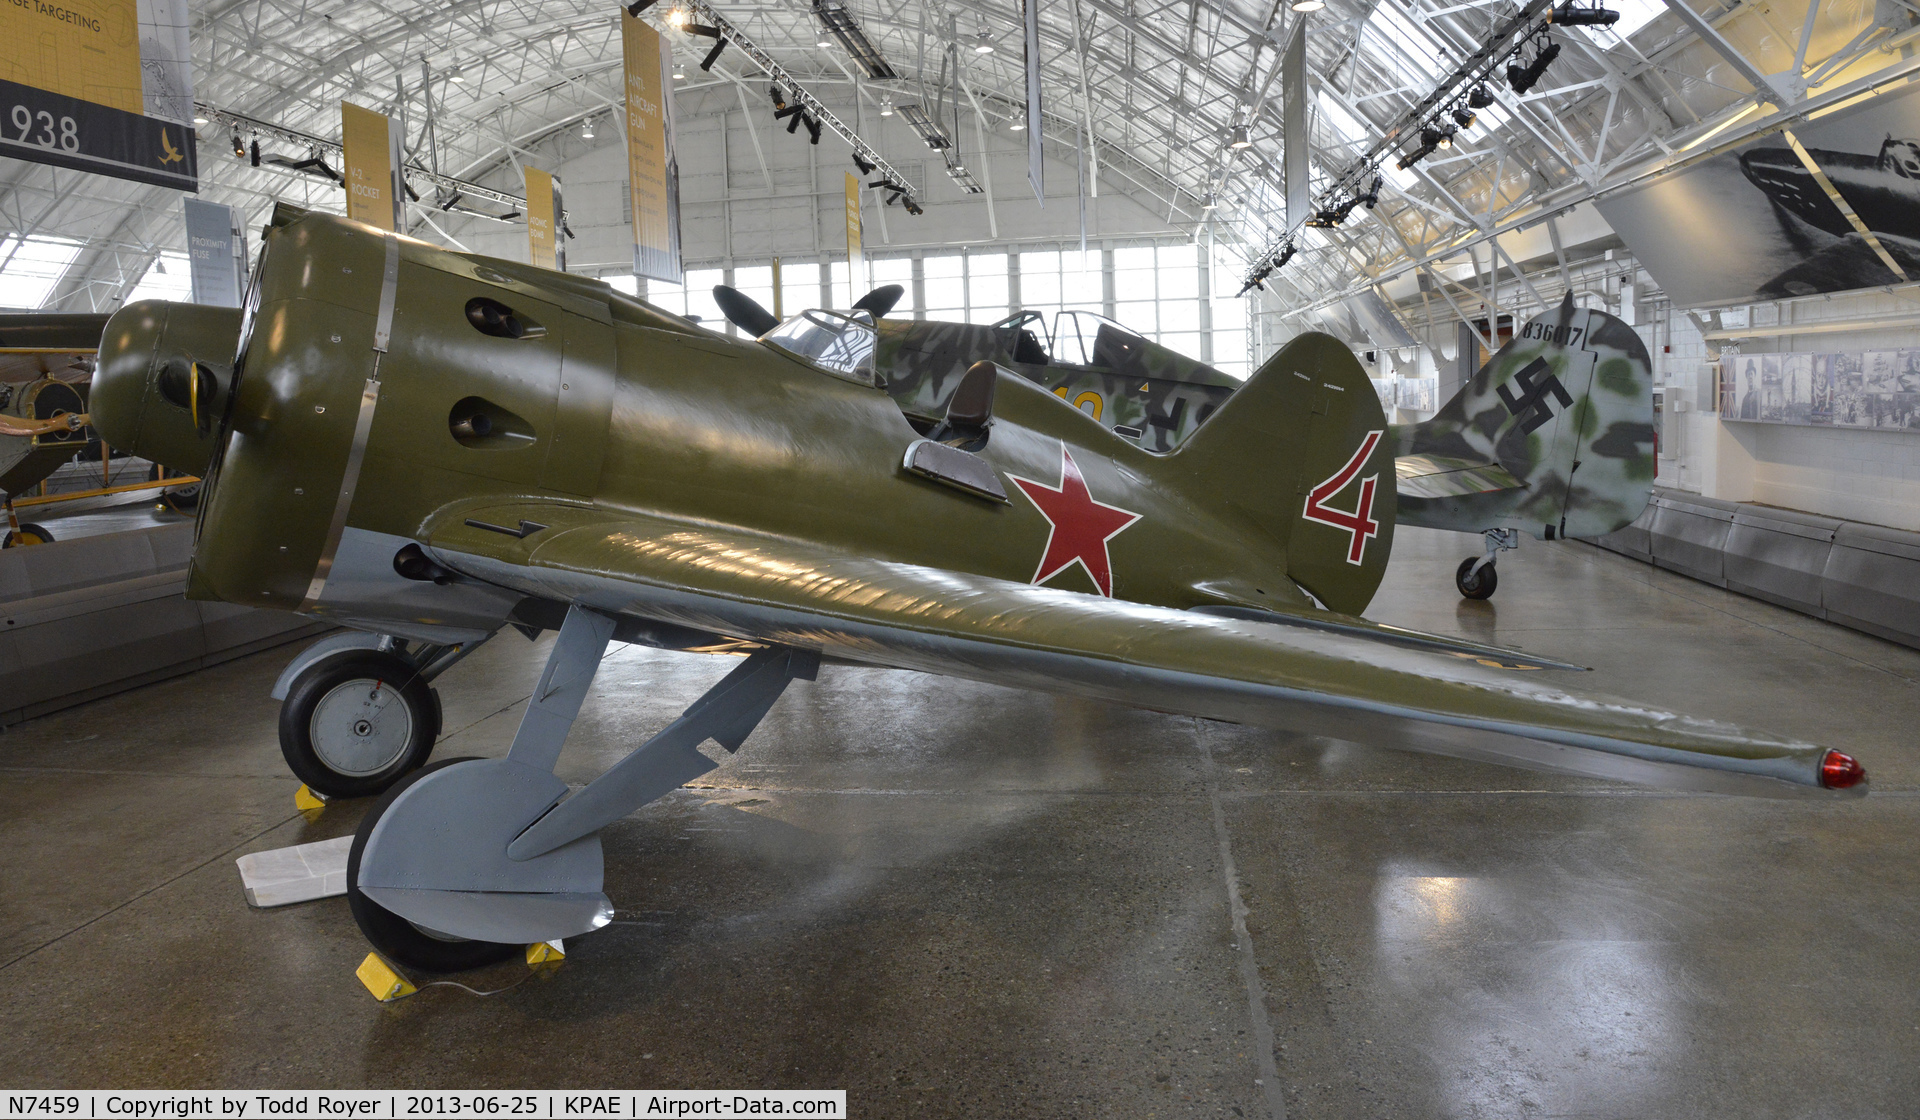 N7459, 1940 Polikarpov I-16 Type 24 C/N 2421014, Part of the Flying Heritage Collection